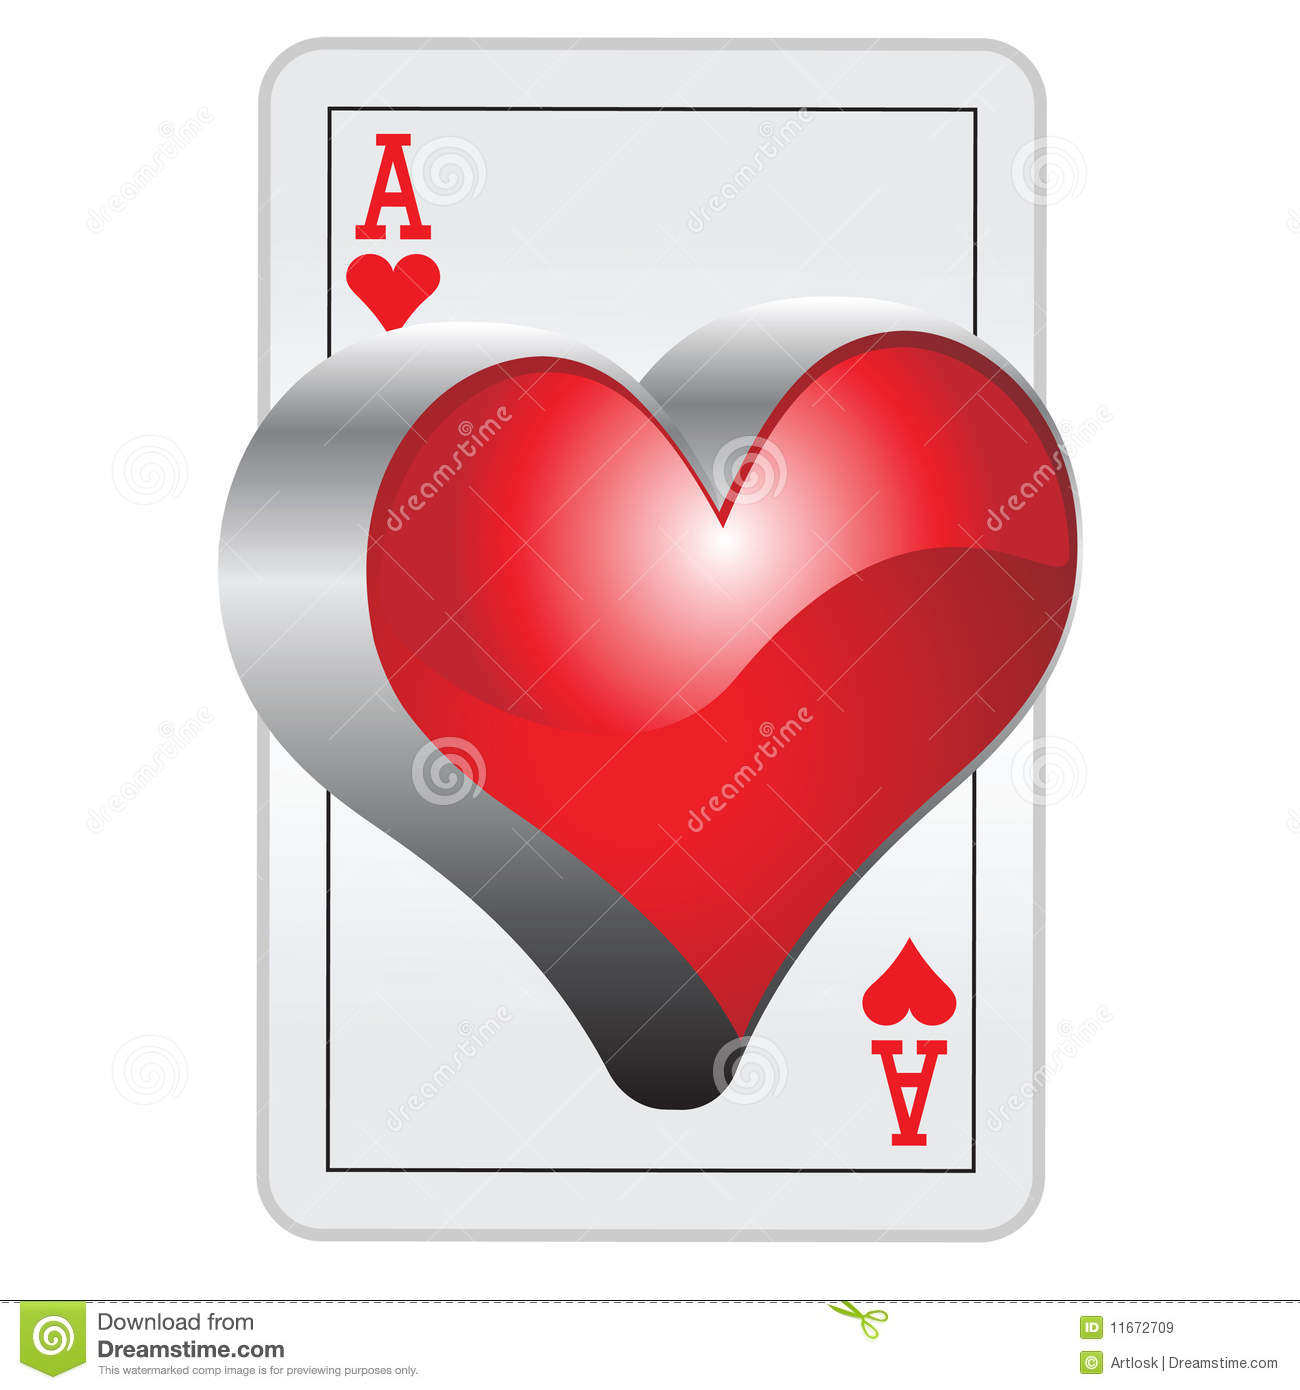 3d ace of hearts royalty free stock images image 11672709 for Asso di cuori tattoo